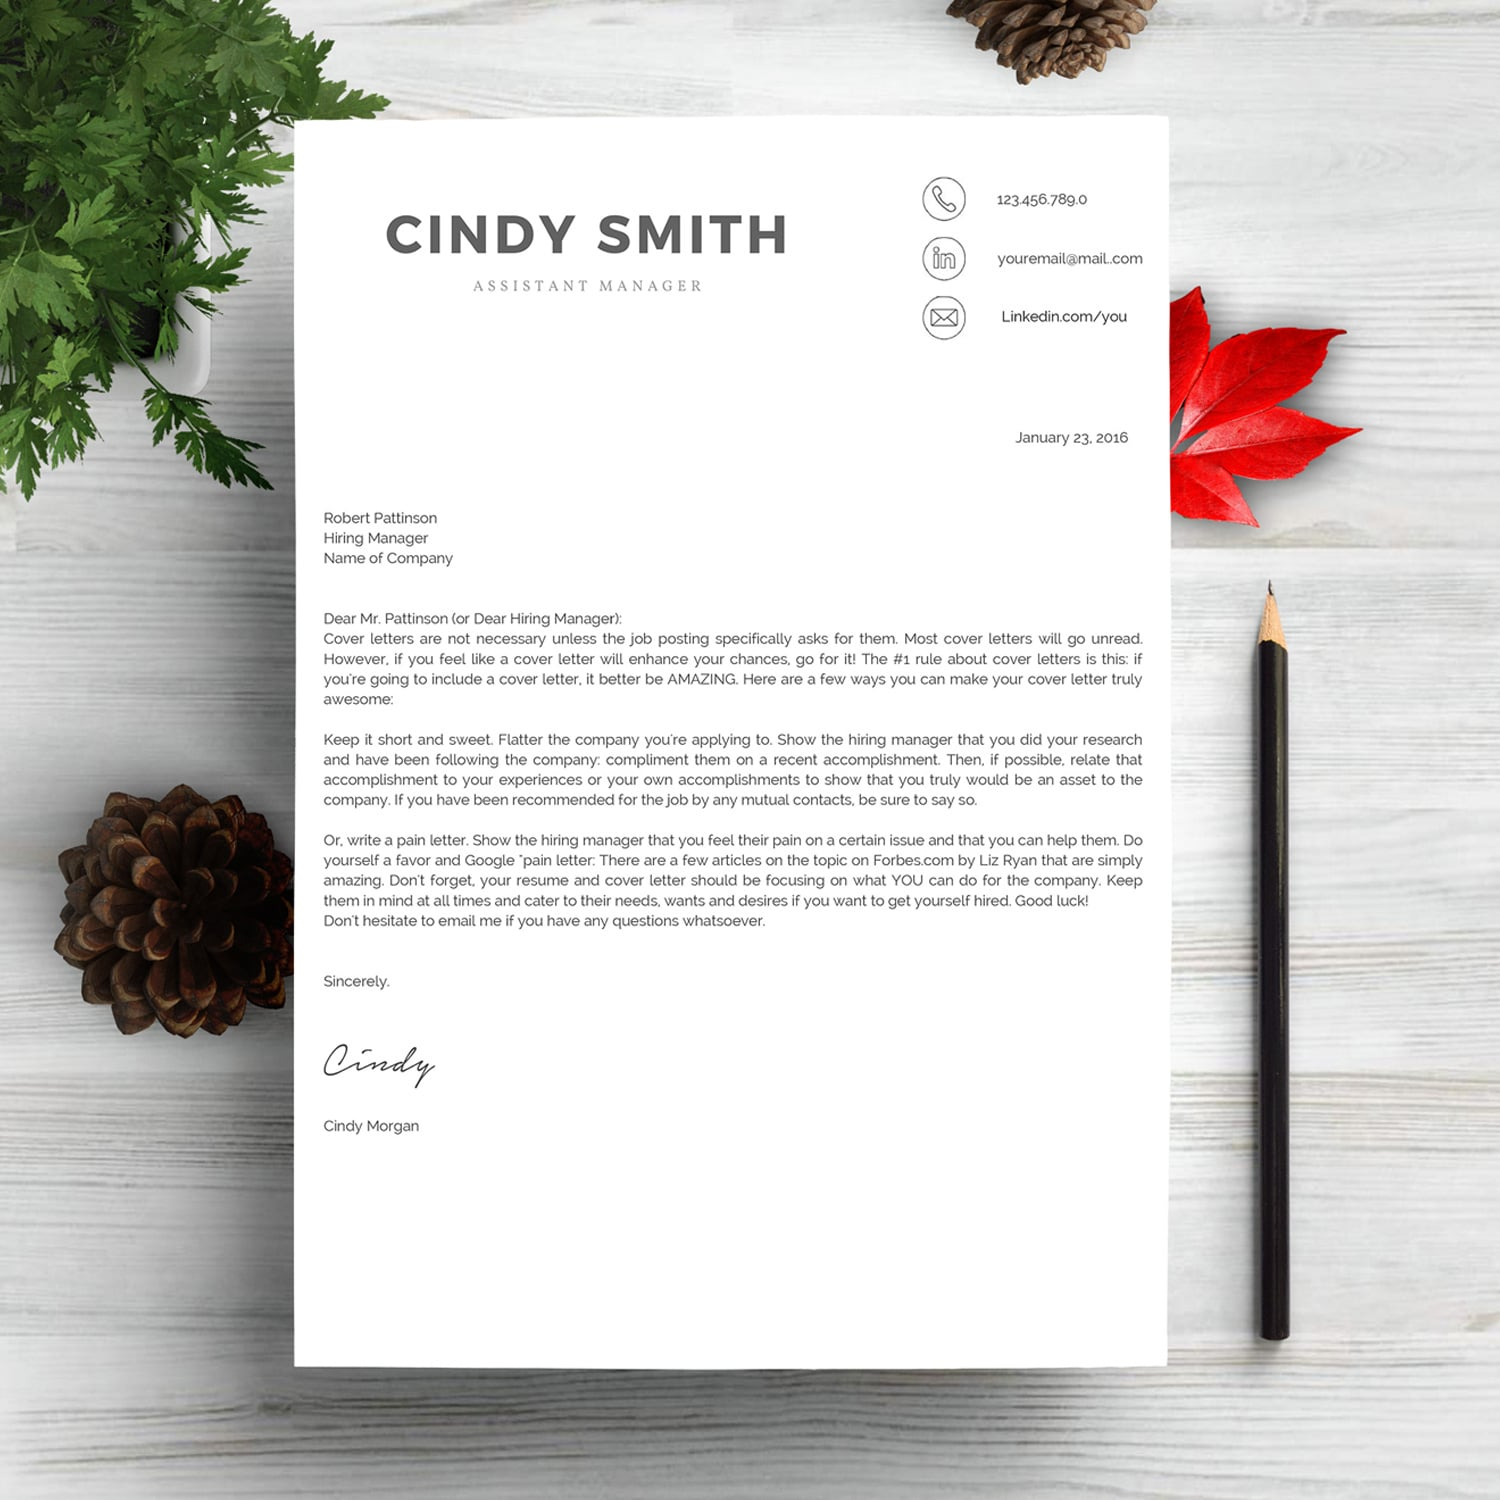 Professional Resume Template 2020. Clean Resume Template – Only $9! - cover letter 3